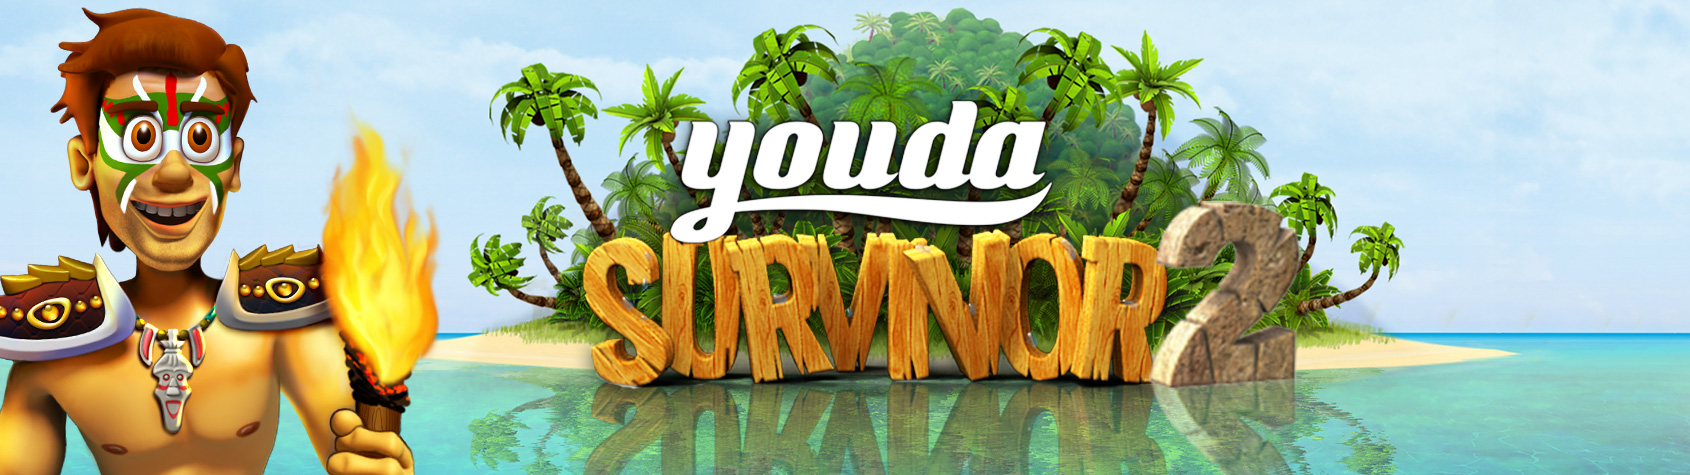 Youda Survivor 2 HD